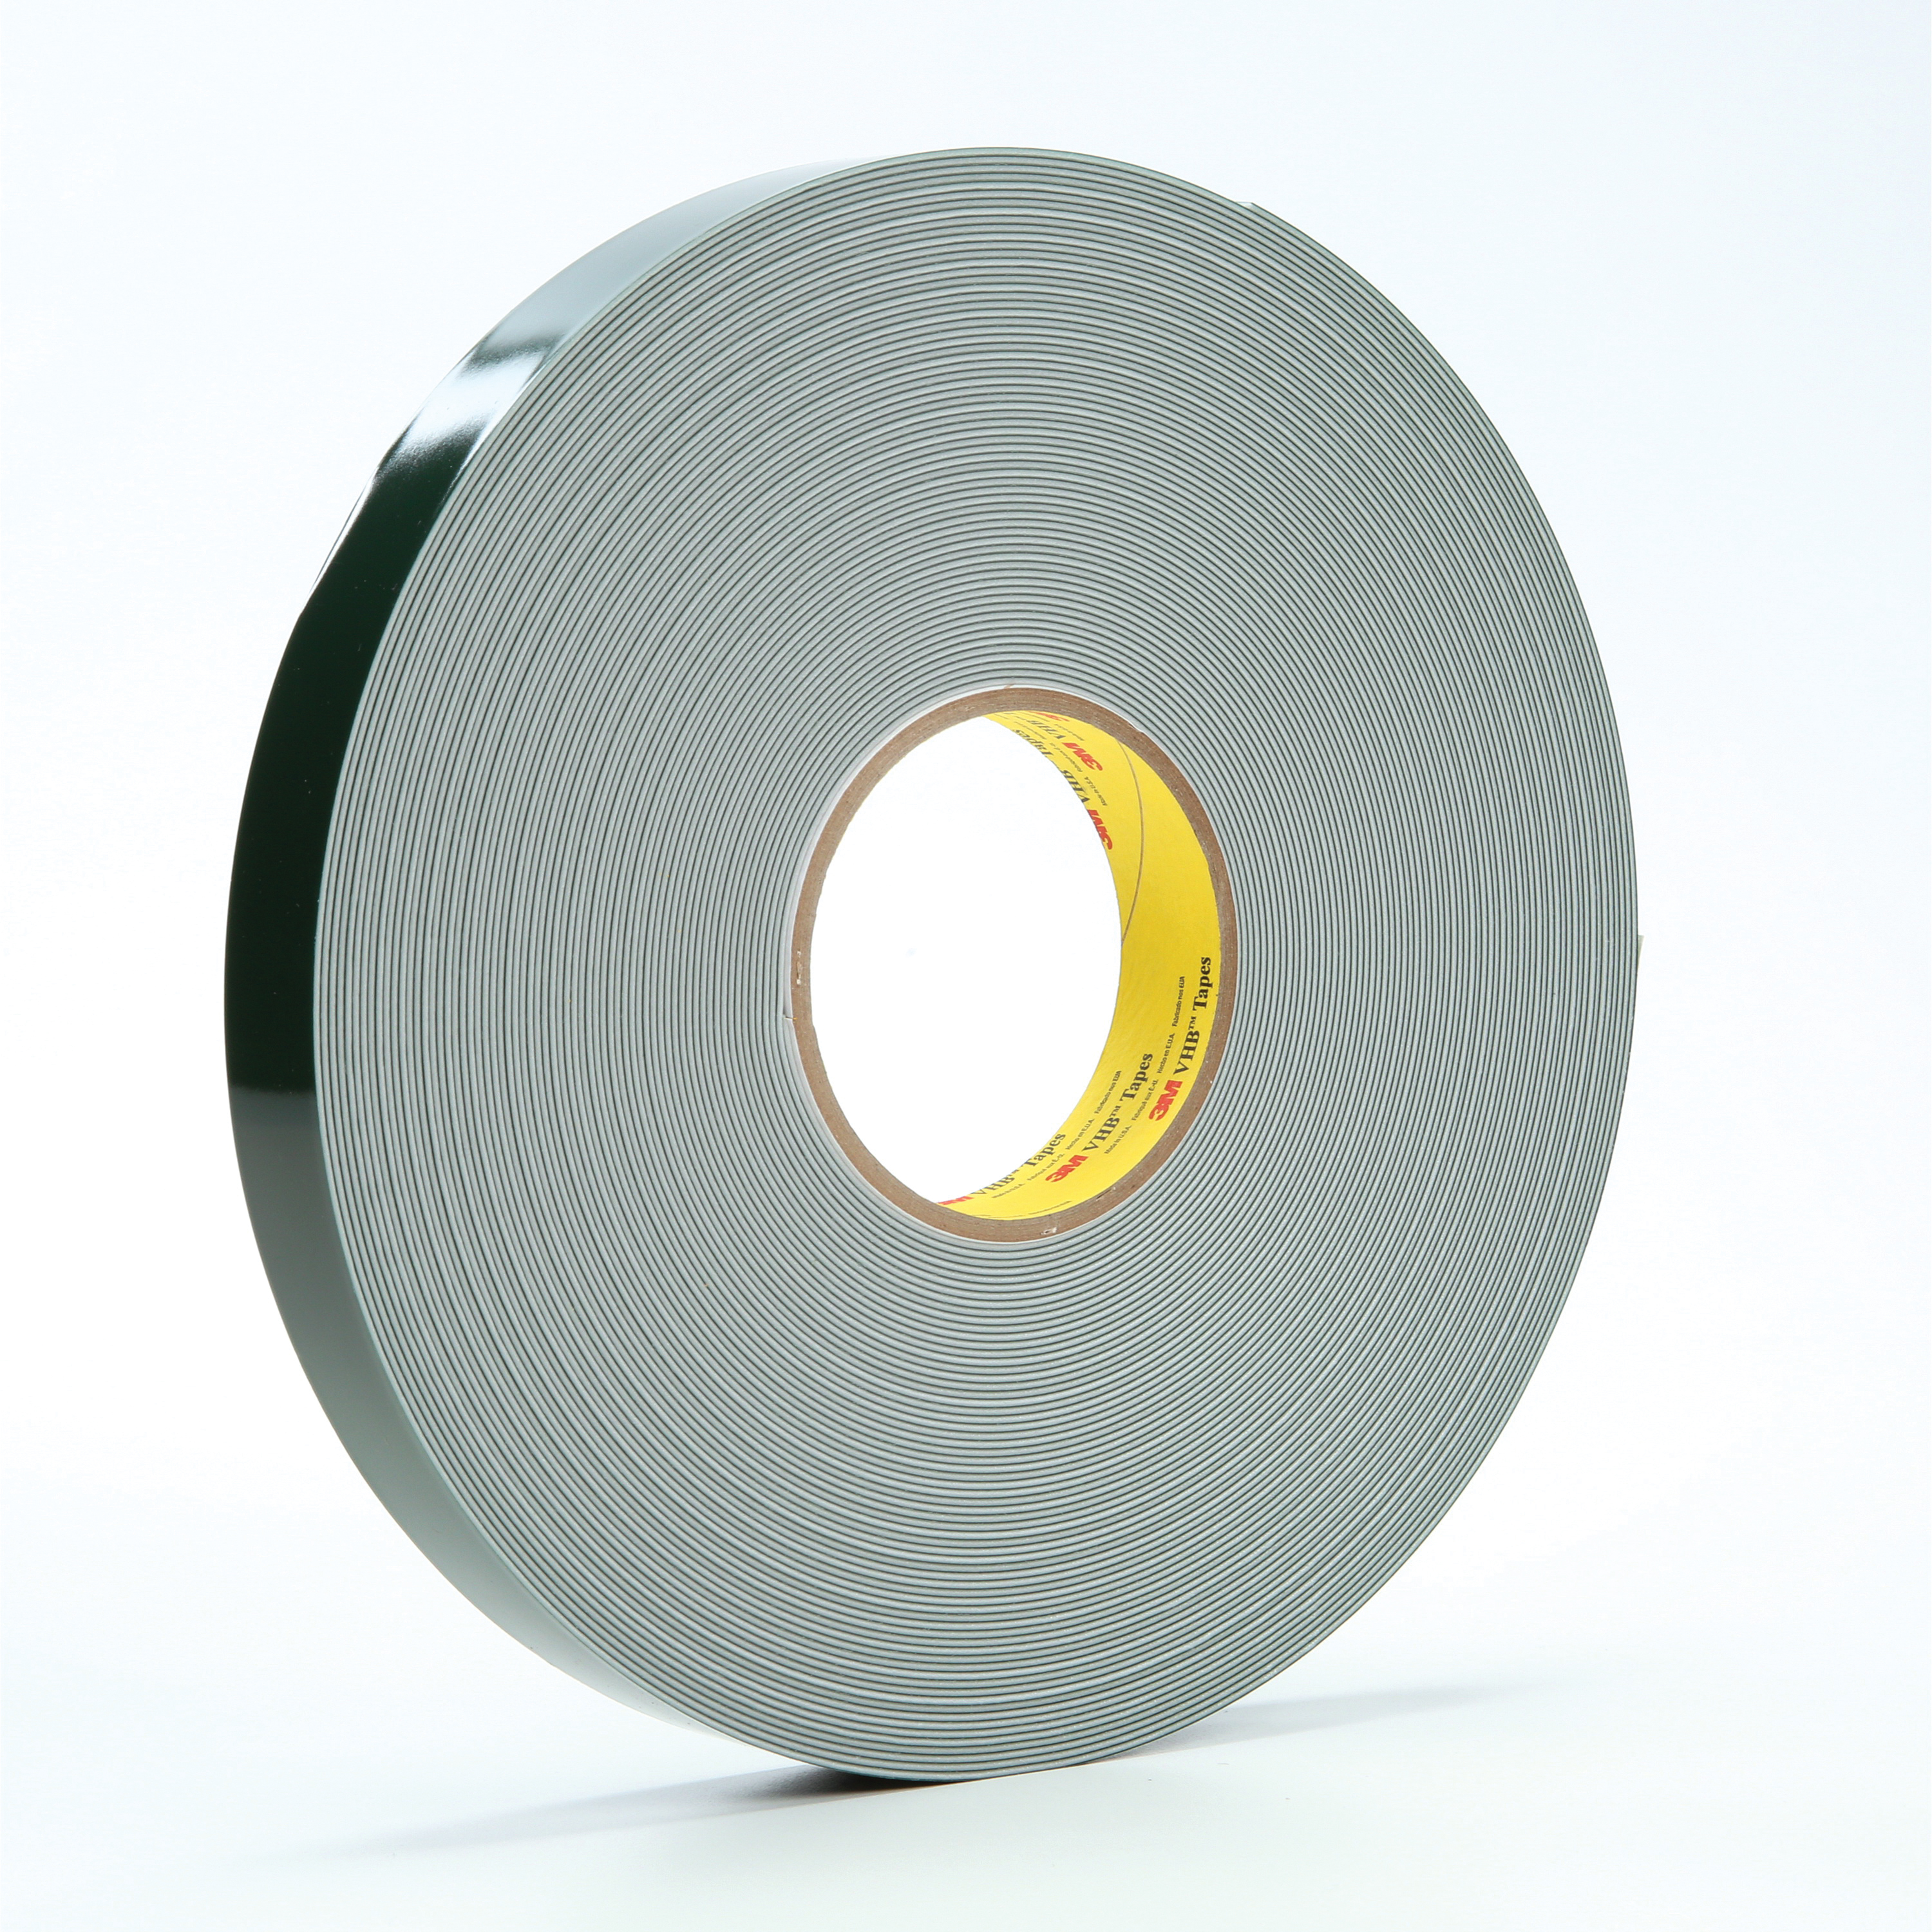 3M™ VHB™ 021200-26112 Double Sided Foam Tape, 36 yd L x 1 in W, 0.045 in THK, General Purpose Acrylic Adhesive, Acrylic Foam Backing, White